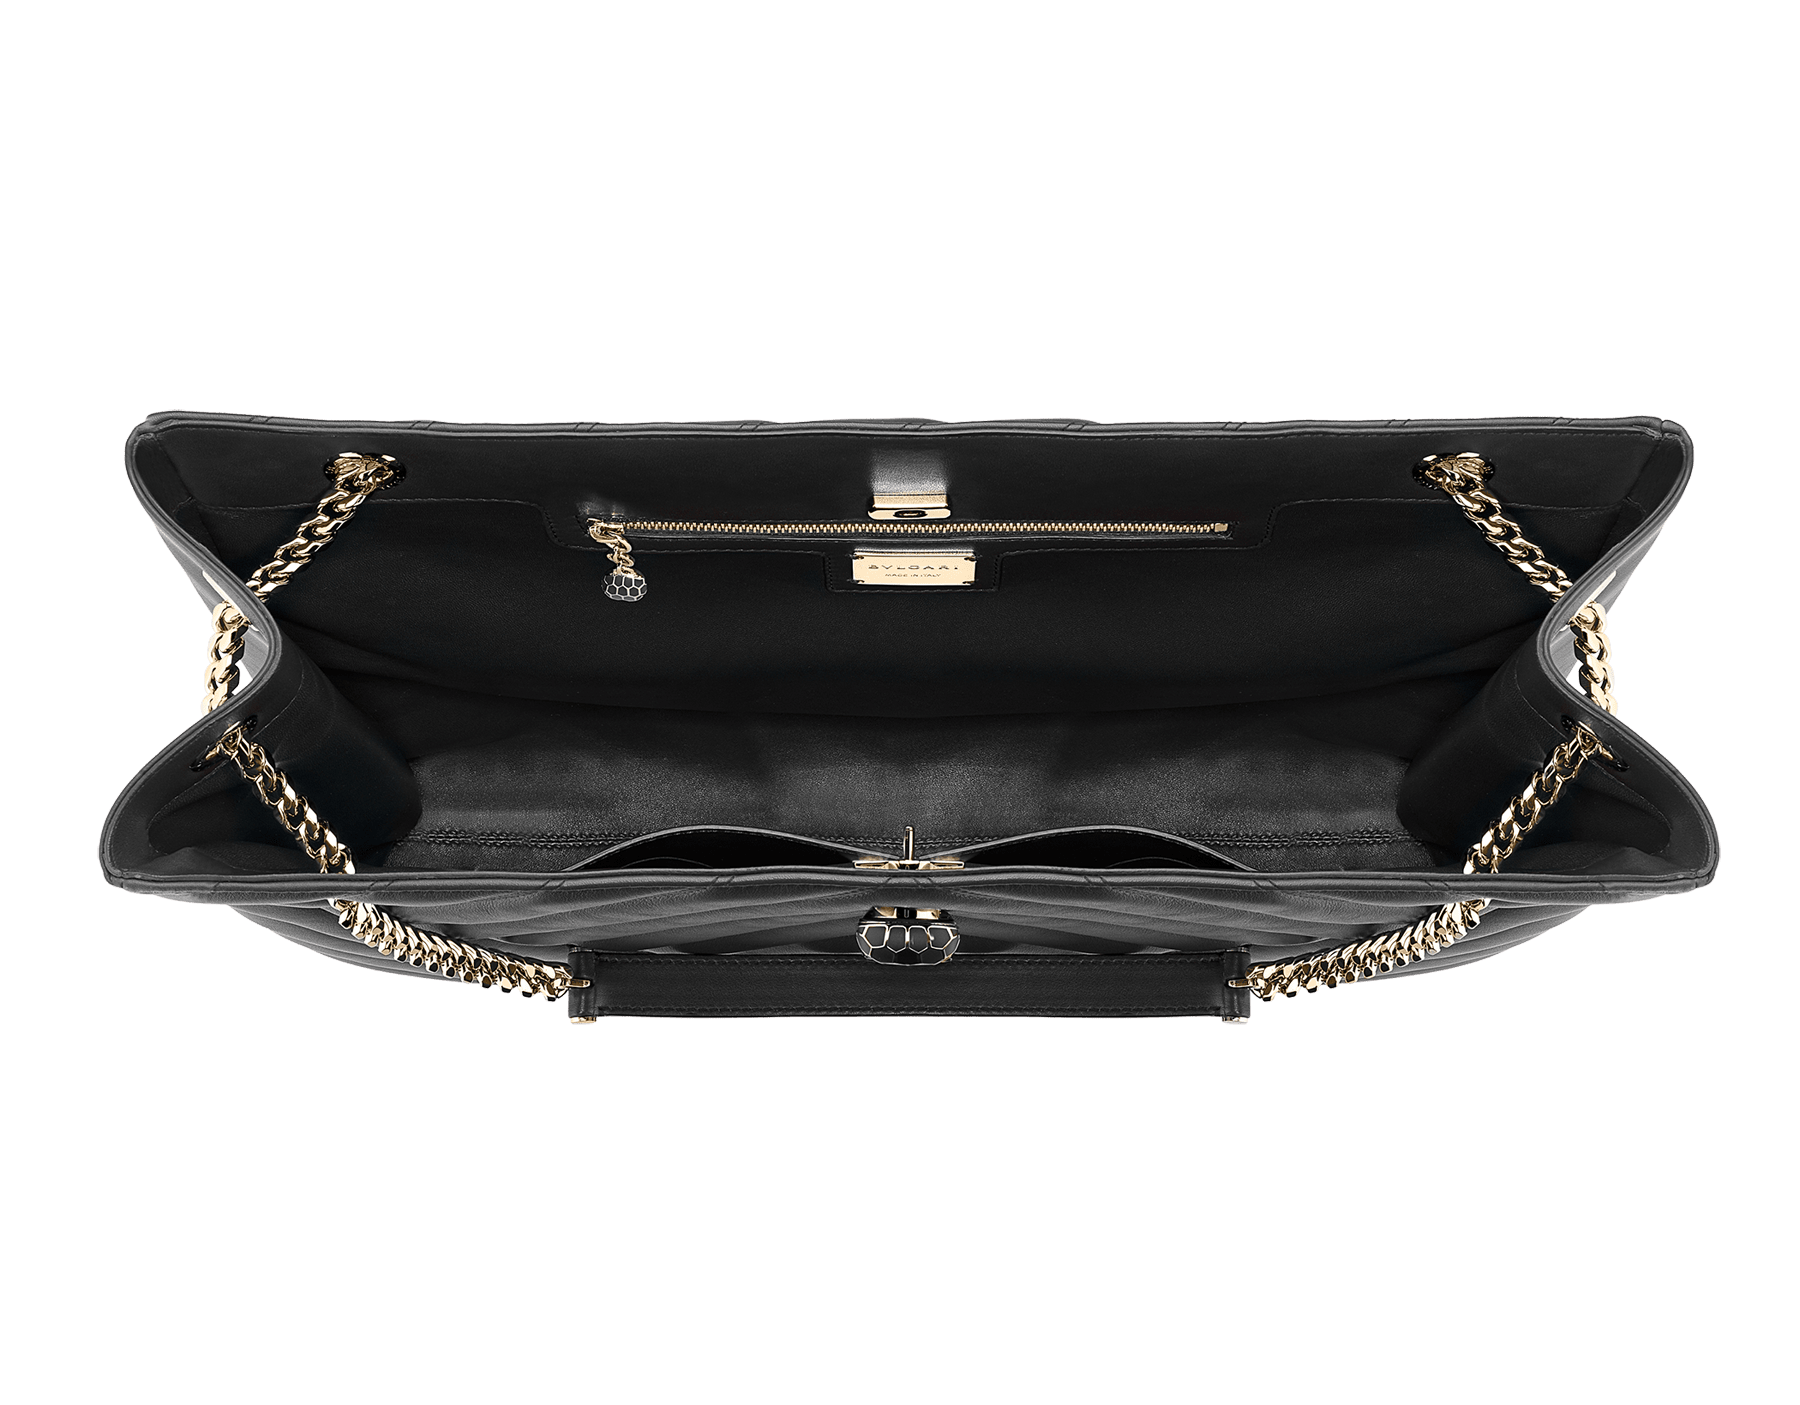 Serpenti Cabochon tote bag in soft matelassé black nappa leather with graphic motif and black calf leather. Snakehead decòr in rose gold plated brass embellished with matte black and shiny black enamel, and black onyx eyes. 287996 image 4